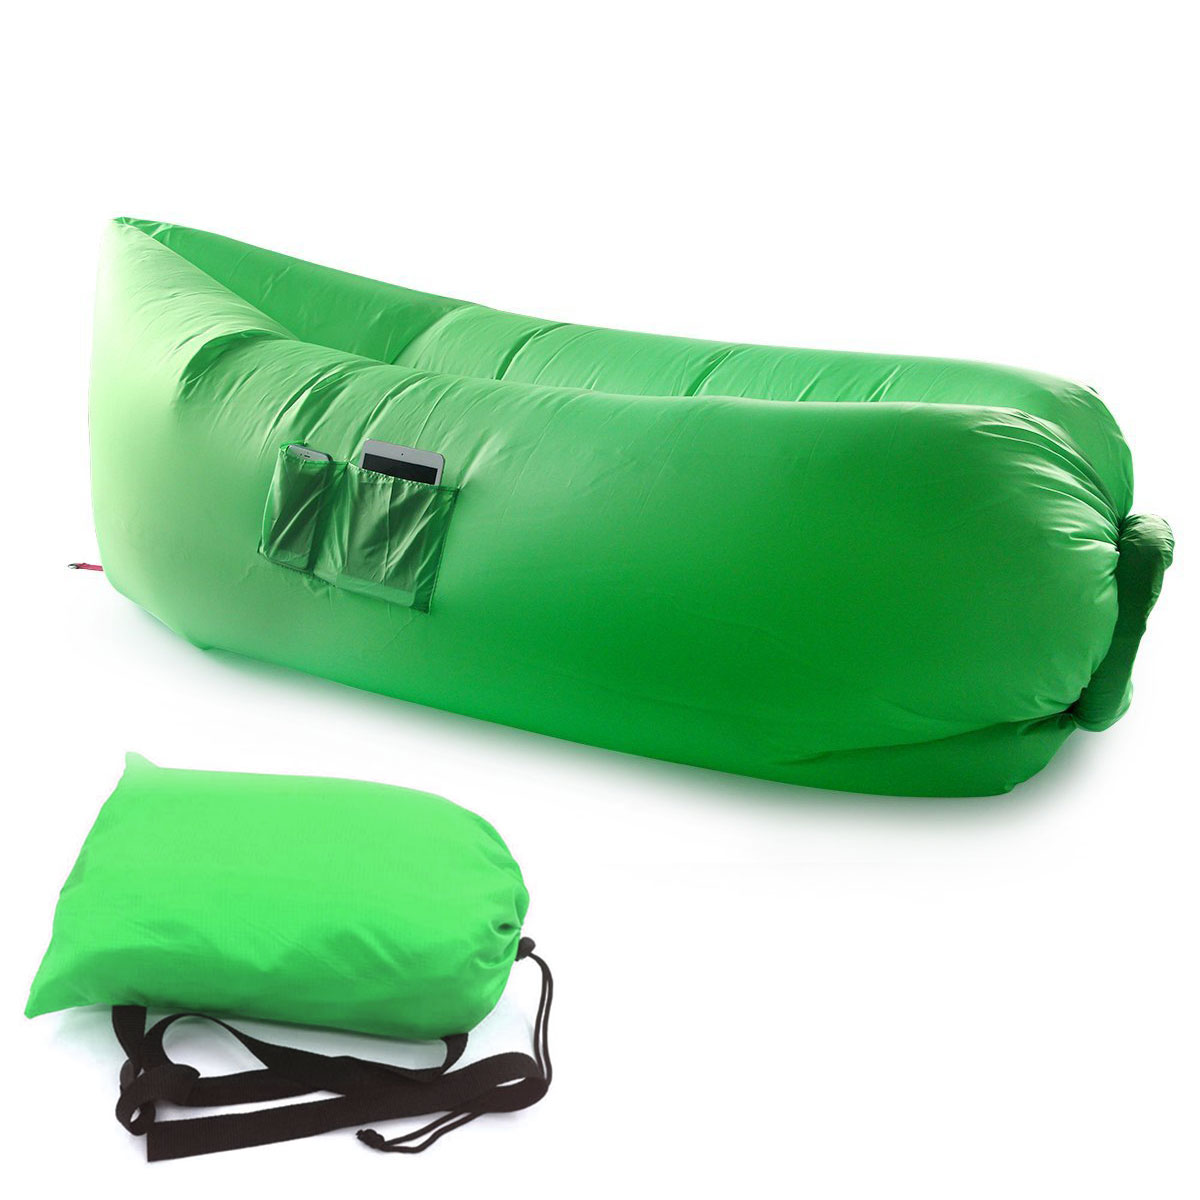 Inflatable Hangout Lounge Chair Air Sofa Bag Outdoor  : 753452f from www.ebay.com size 1200 x 1200 jpeg 114kB